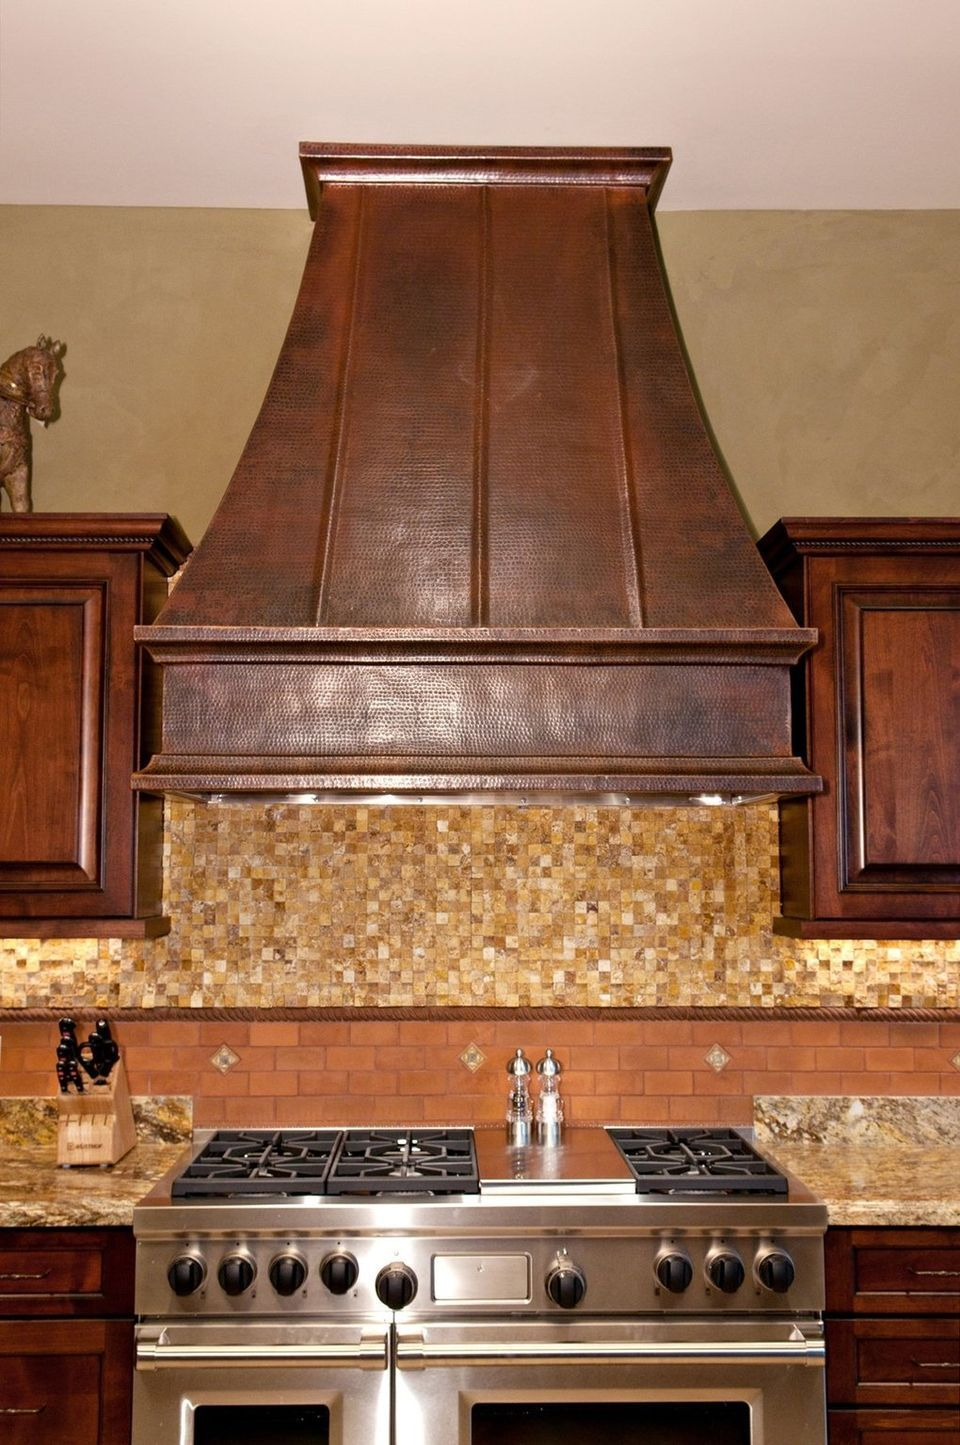 elegant stove under kitchen elegant stove under kitchen ...